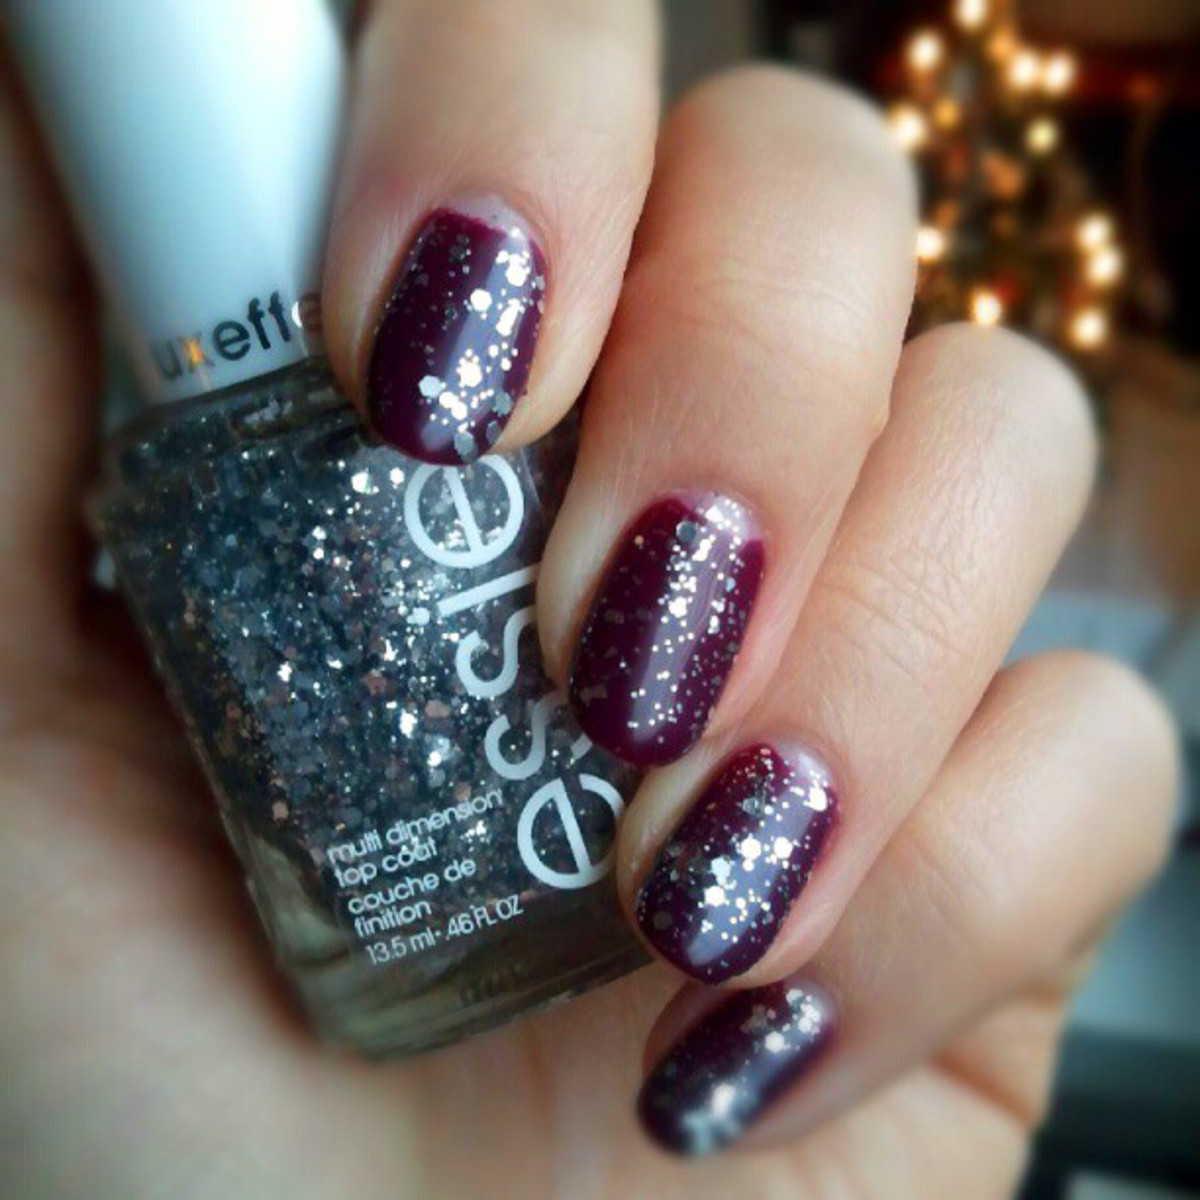 Artistic Colour Gloss in Majestic_Essie Luxeffects Top Coat in Set in Stones